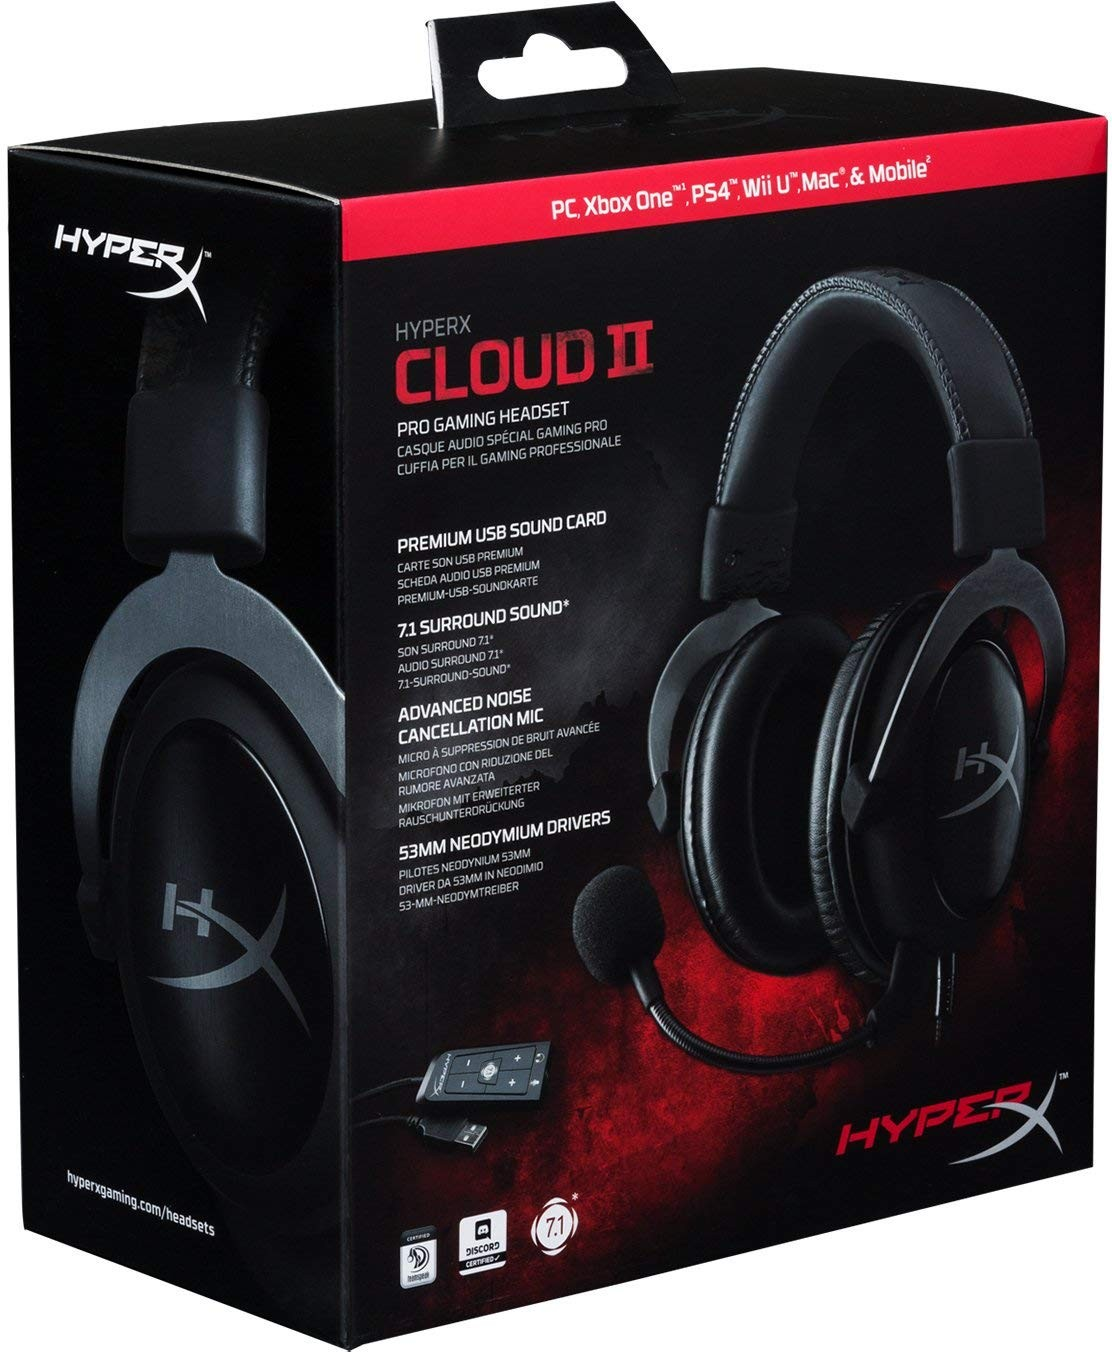 HyperX Cloud II Gaming Headset - 7.1 Surround Sound